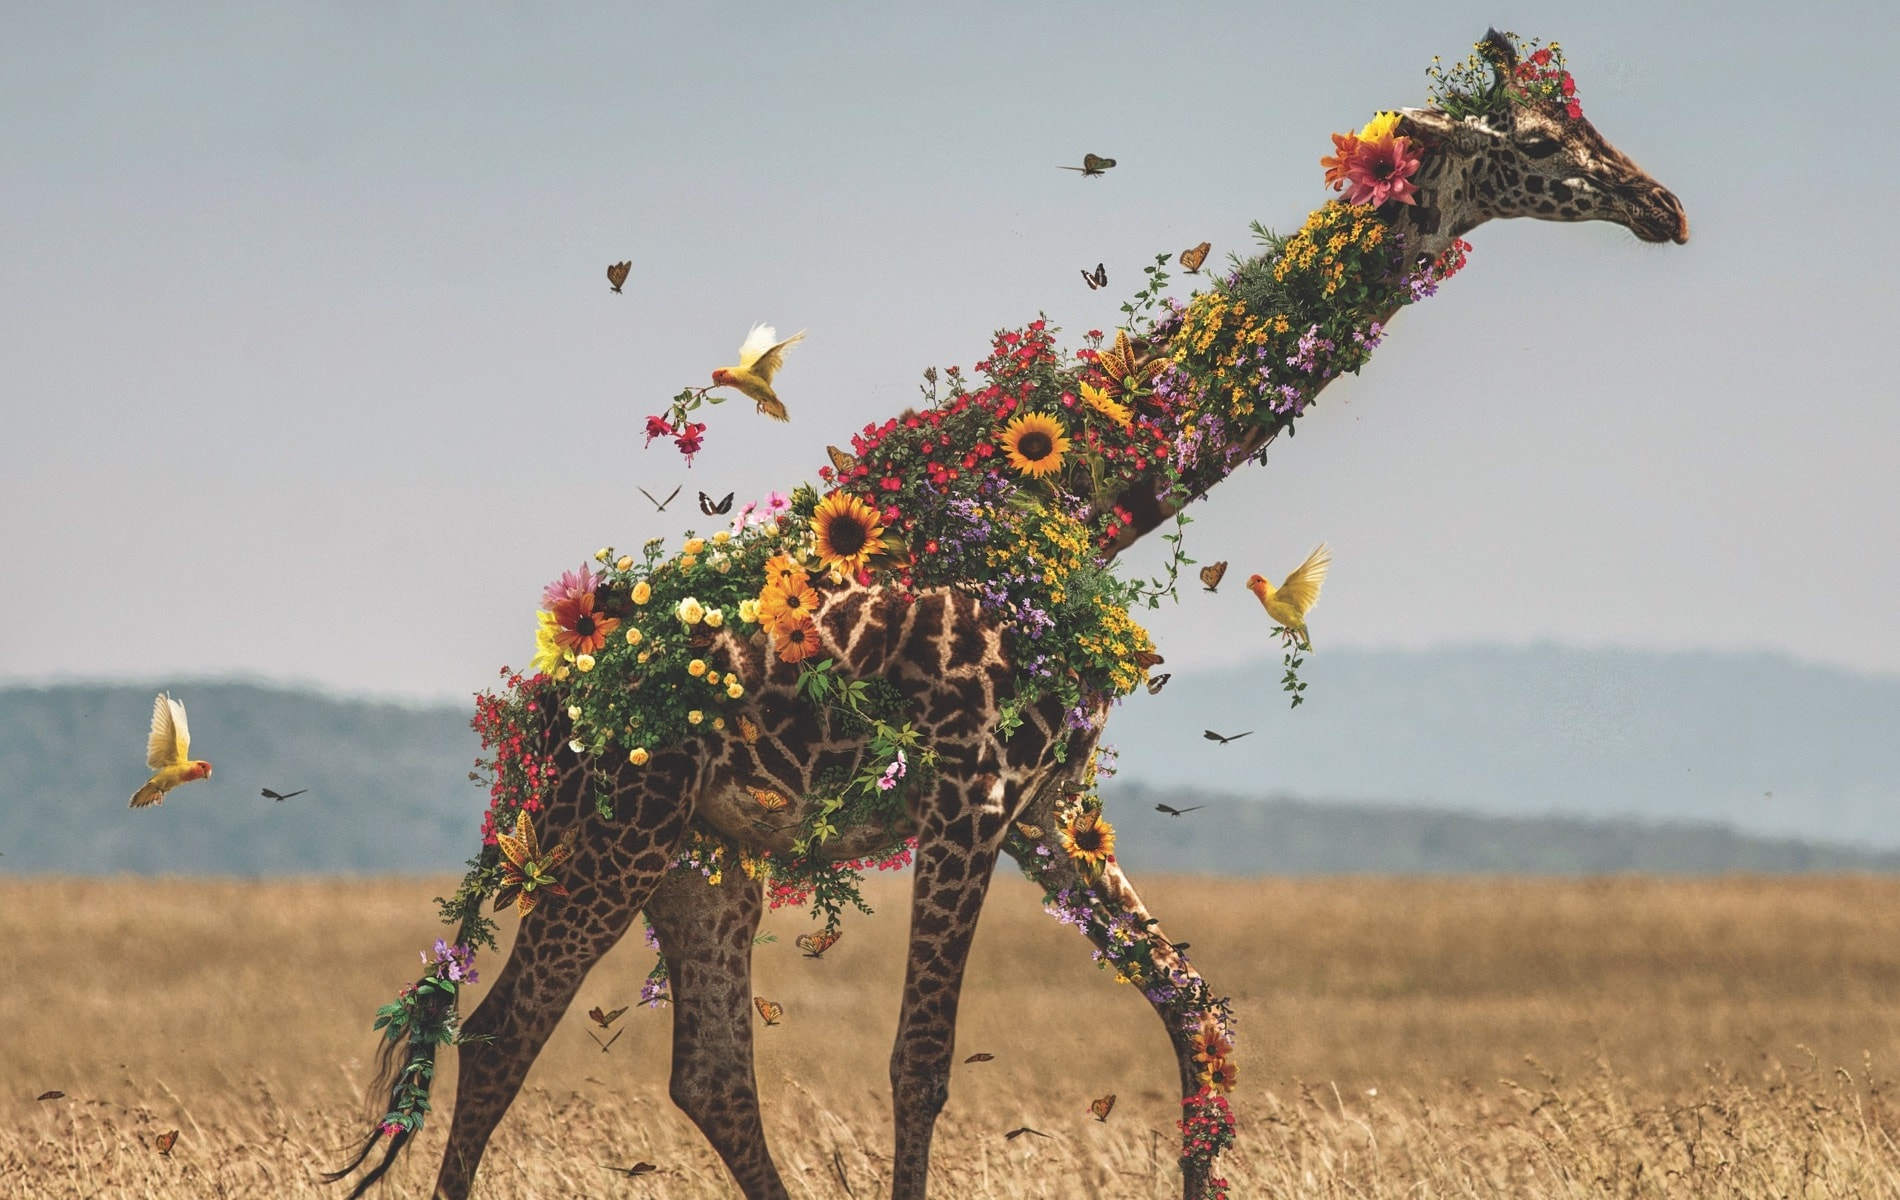 VIE Magazine L'amour Department Page, Marcel van Luit, Giraffe from The Flower Series